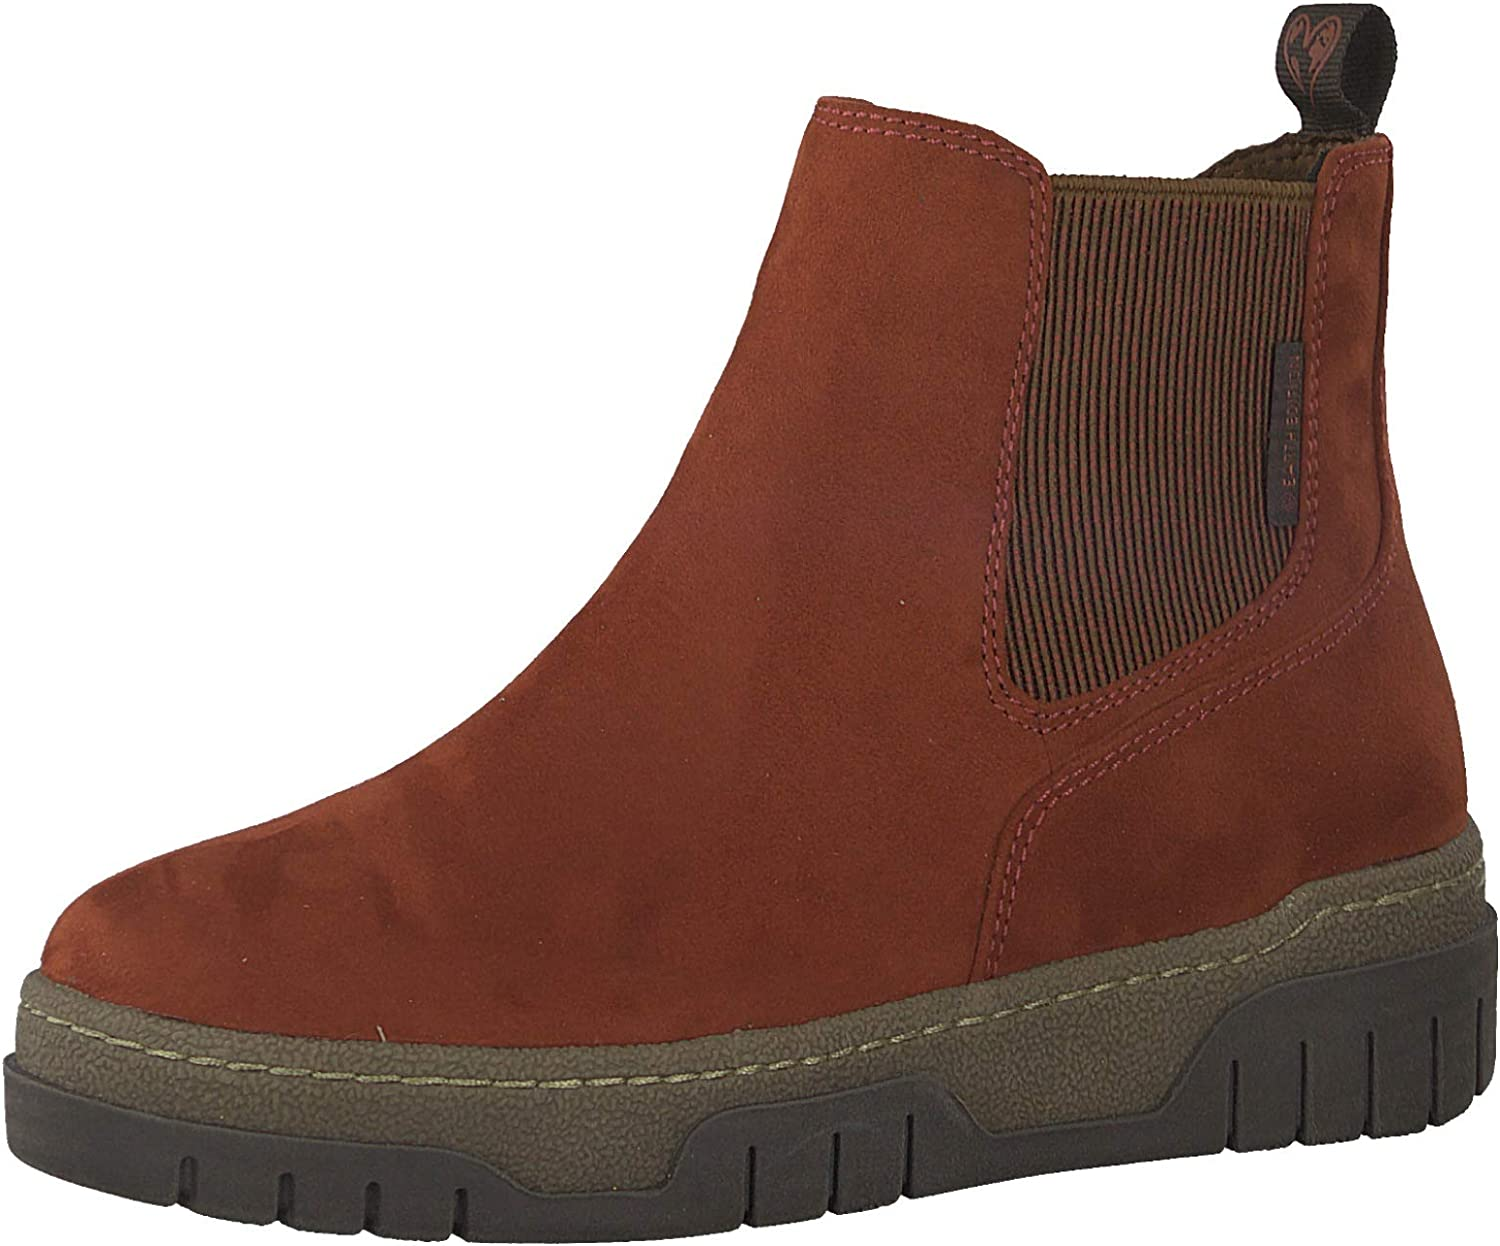 MARCO We OFFer at cheap prices TOZZI Women's Earth Edition Boot Popular overseas 2-2-25873-25 Bri Chelsea